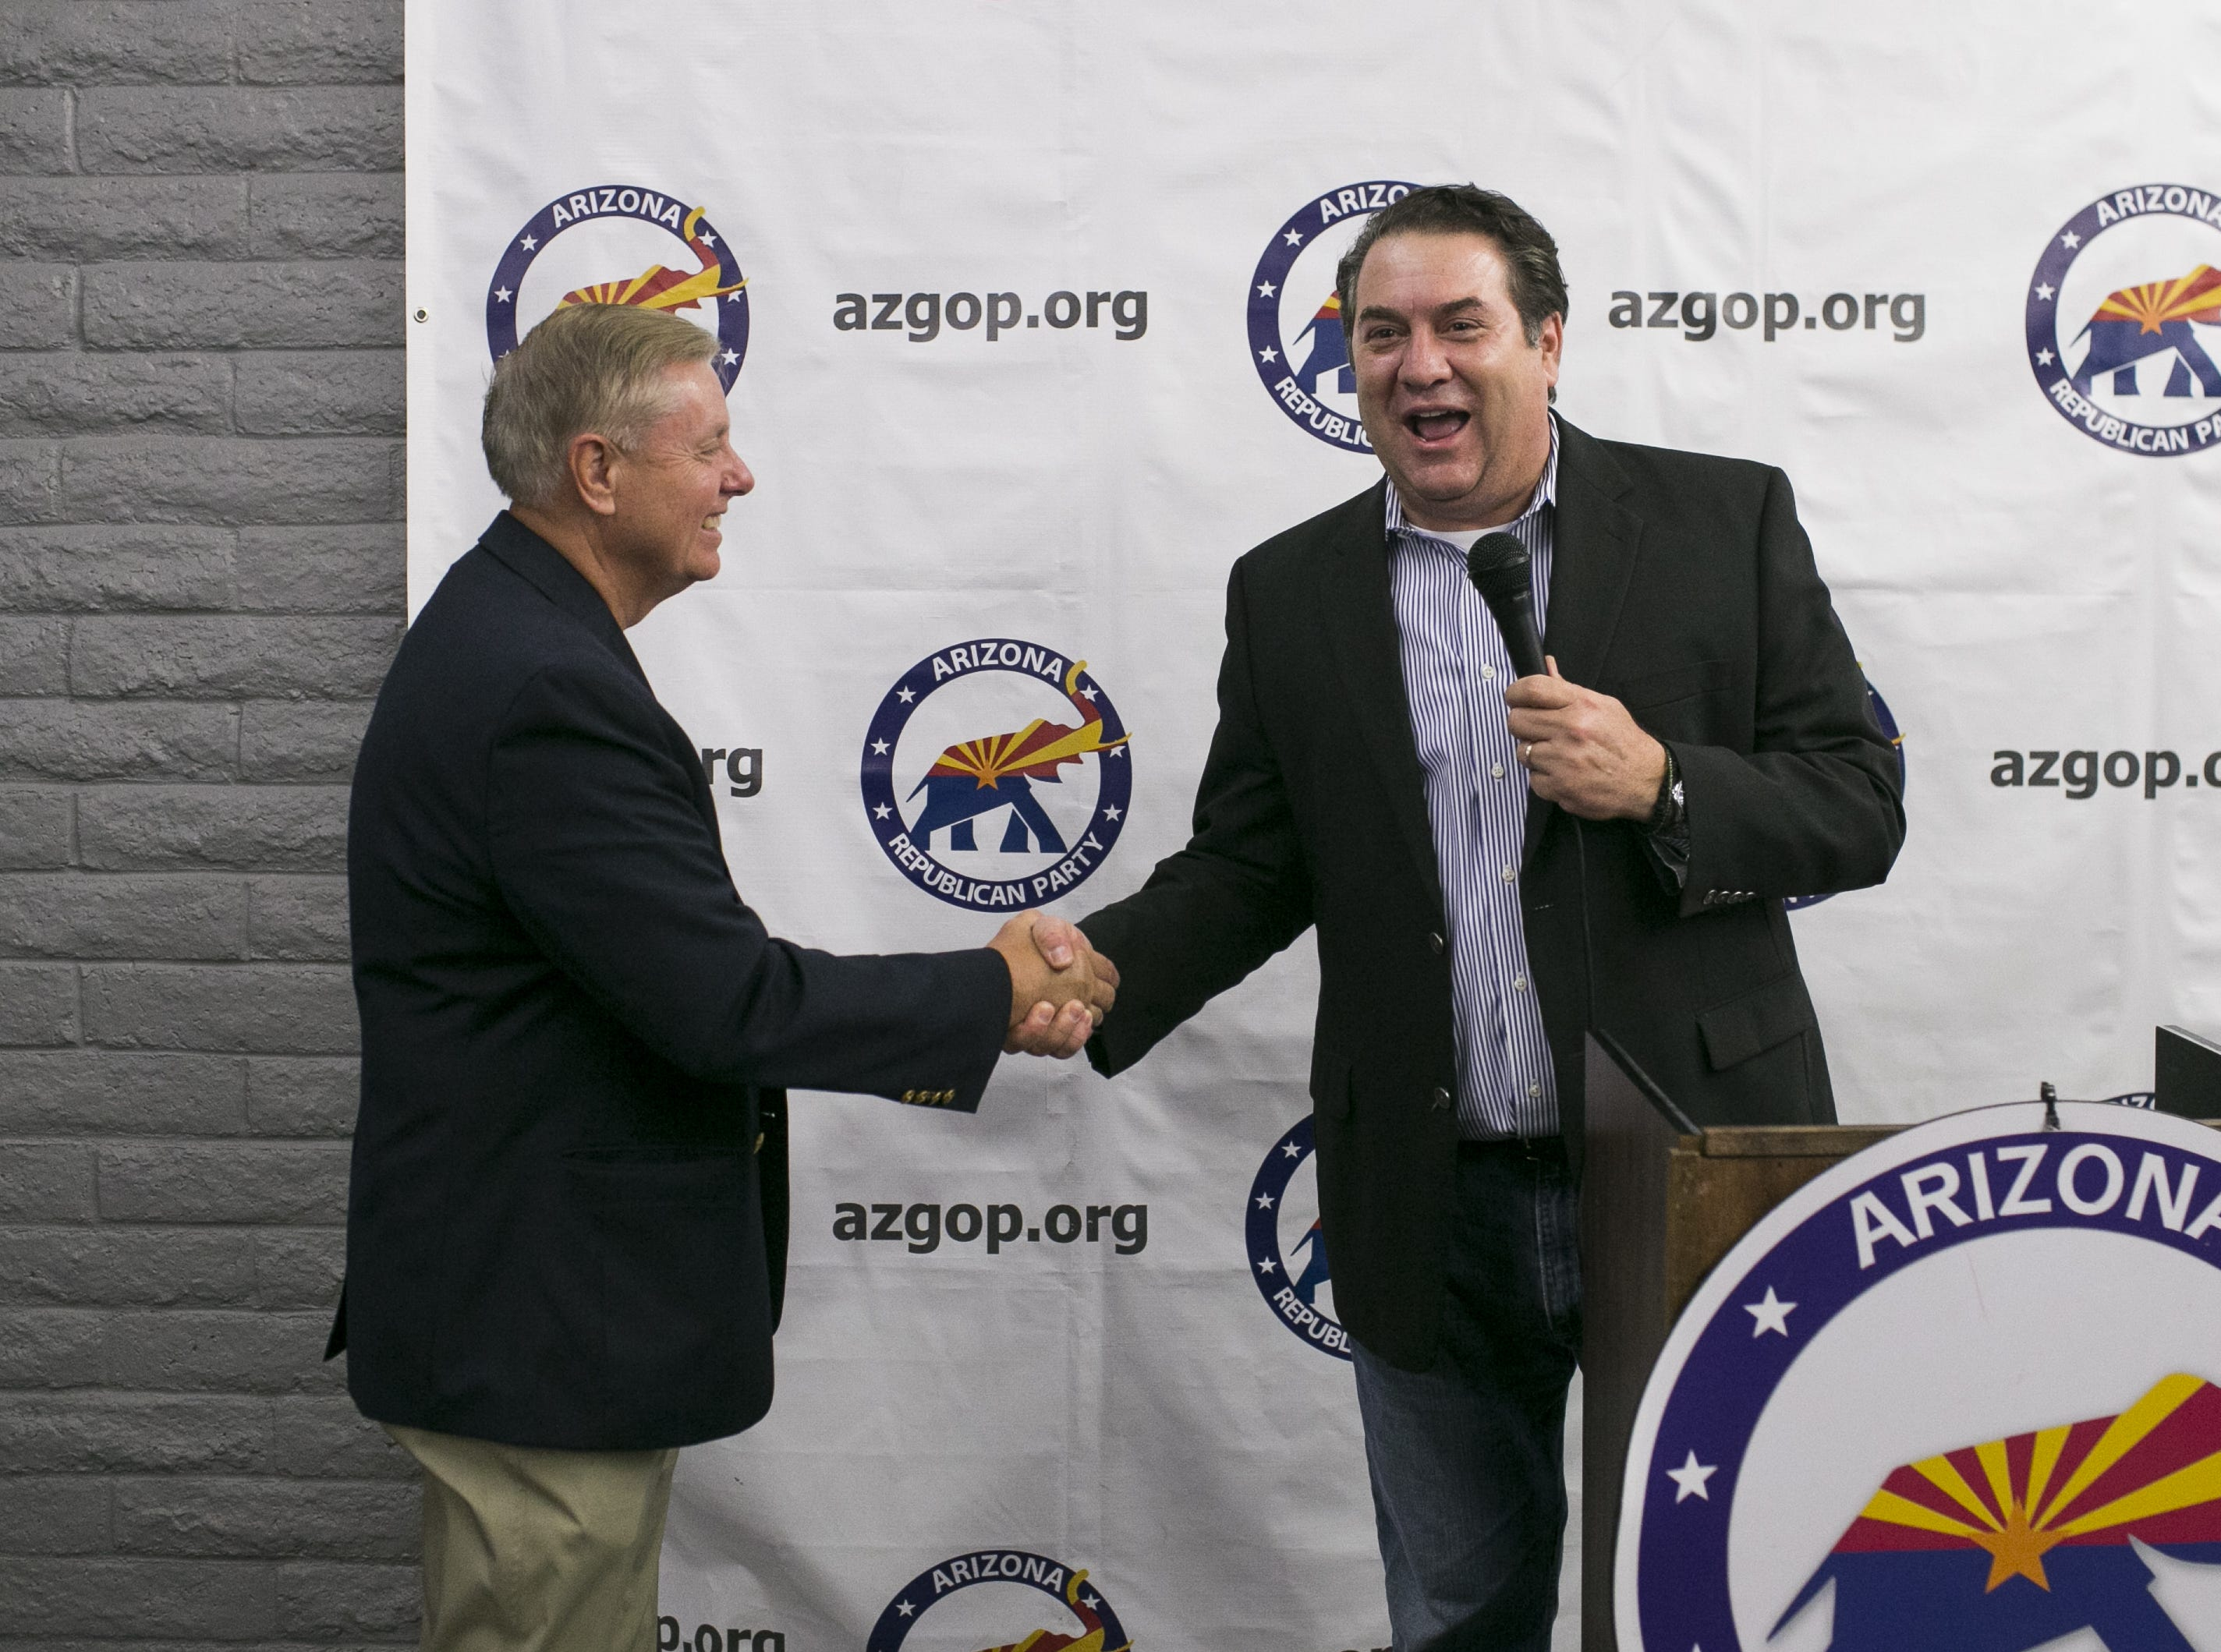 Attorney general Mark Brnovich (right) shakes hands with Sen. Lindsey Graham, R-S.C. (left) at the Arizona GOP headquarters in Phoenix, Ariz. on Oct. 27, 2018.